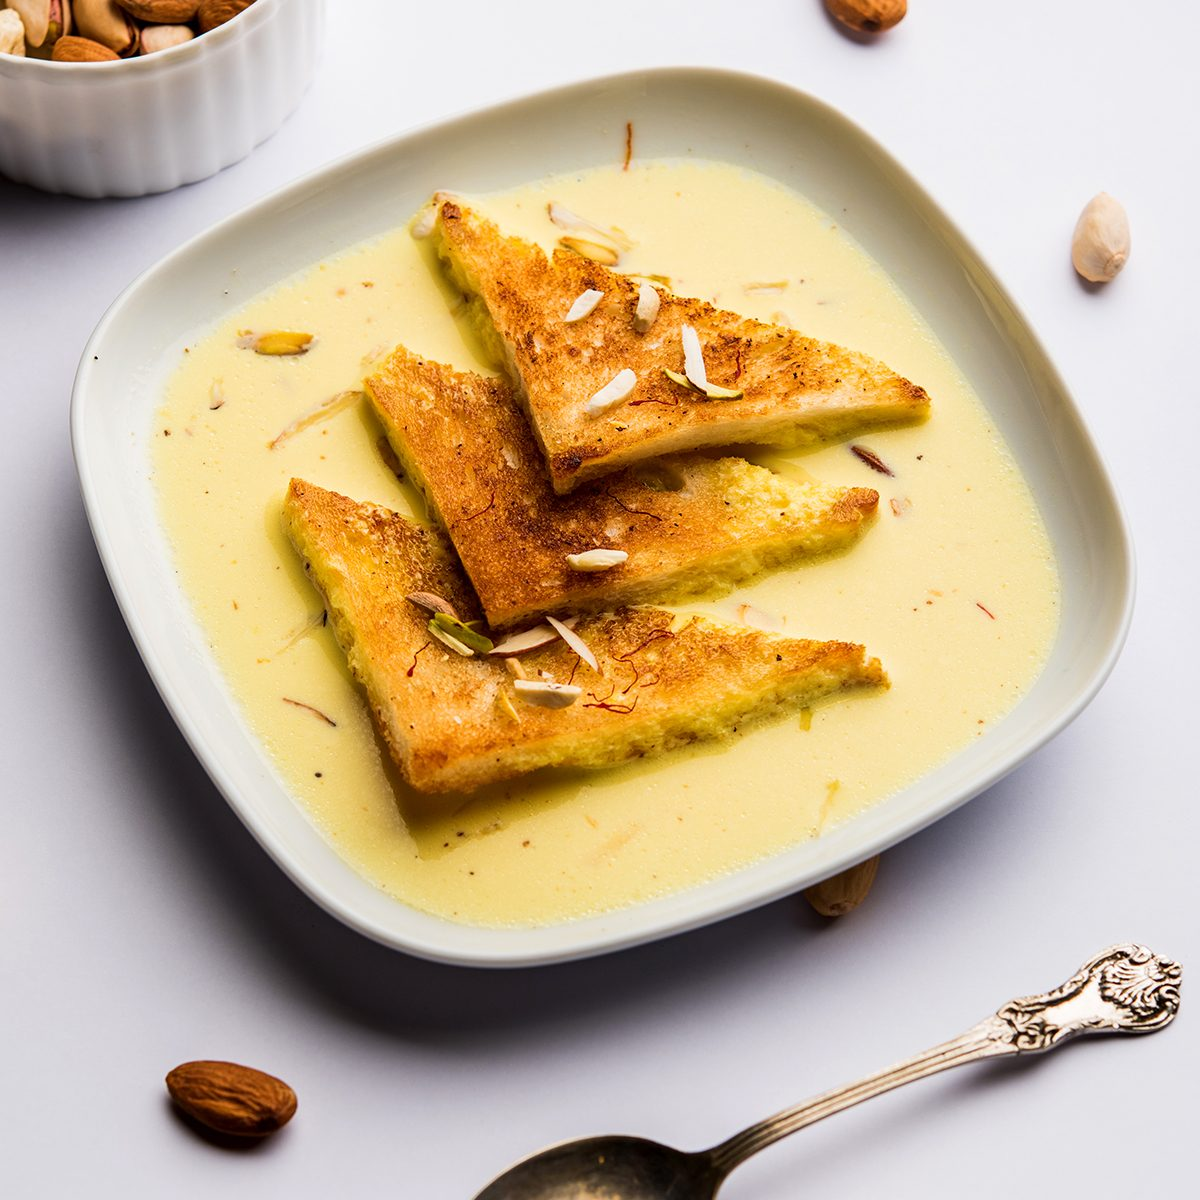 shahi tukra/tukda or Double ka meetha is a bread pudding Indian sweet of fried bread slices soaked in rabid or sweet saffron milk garnished with dry fruits, selective focus